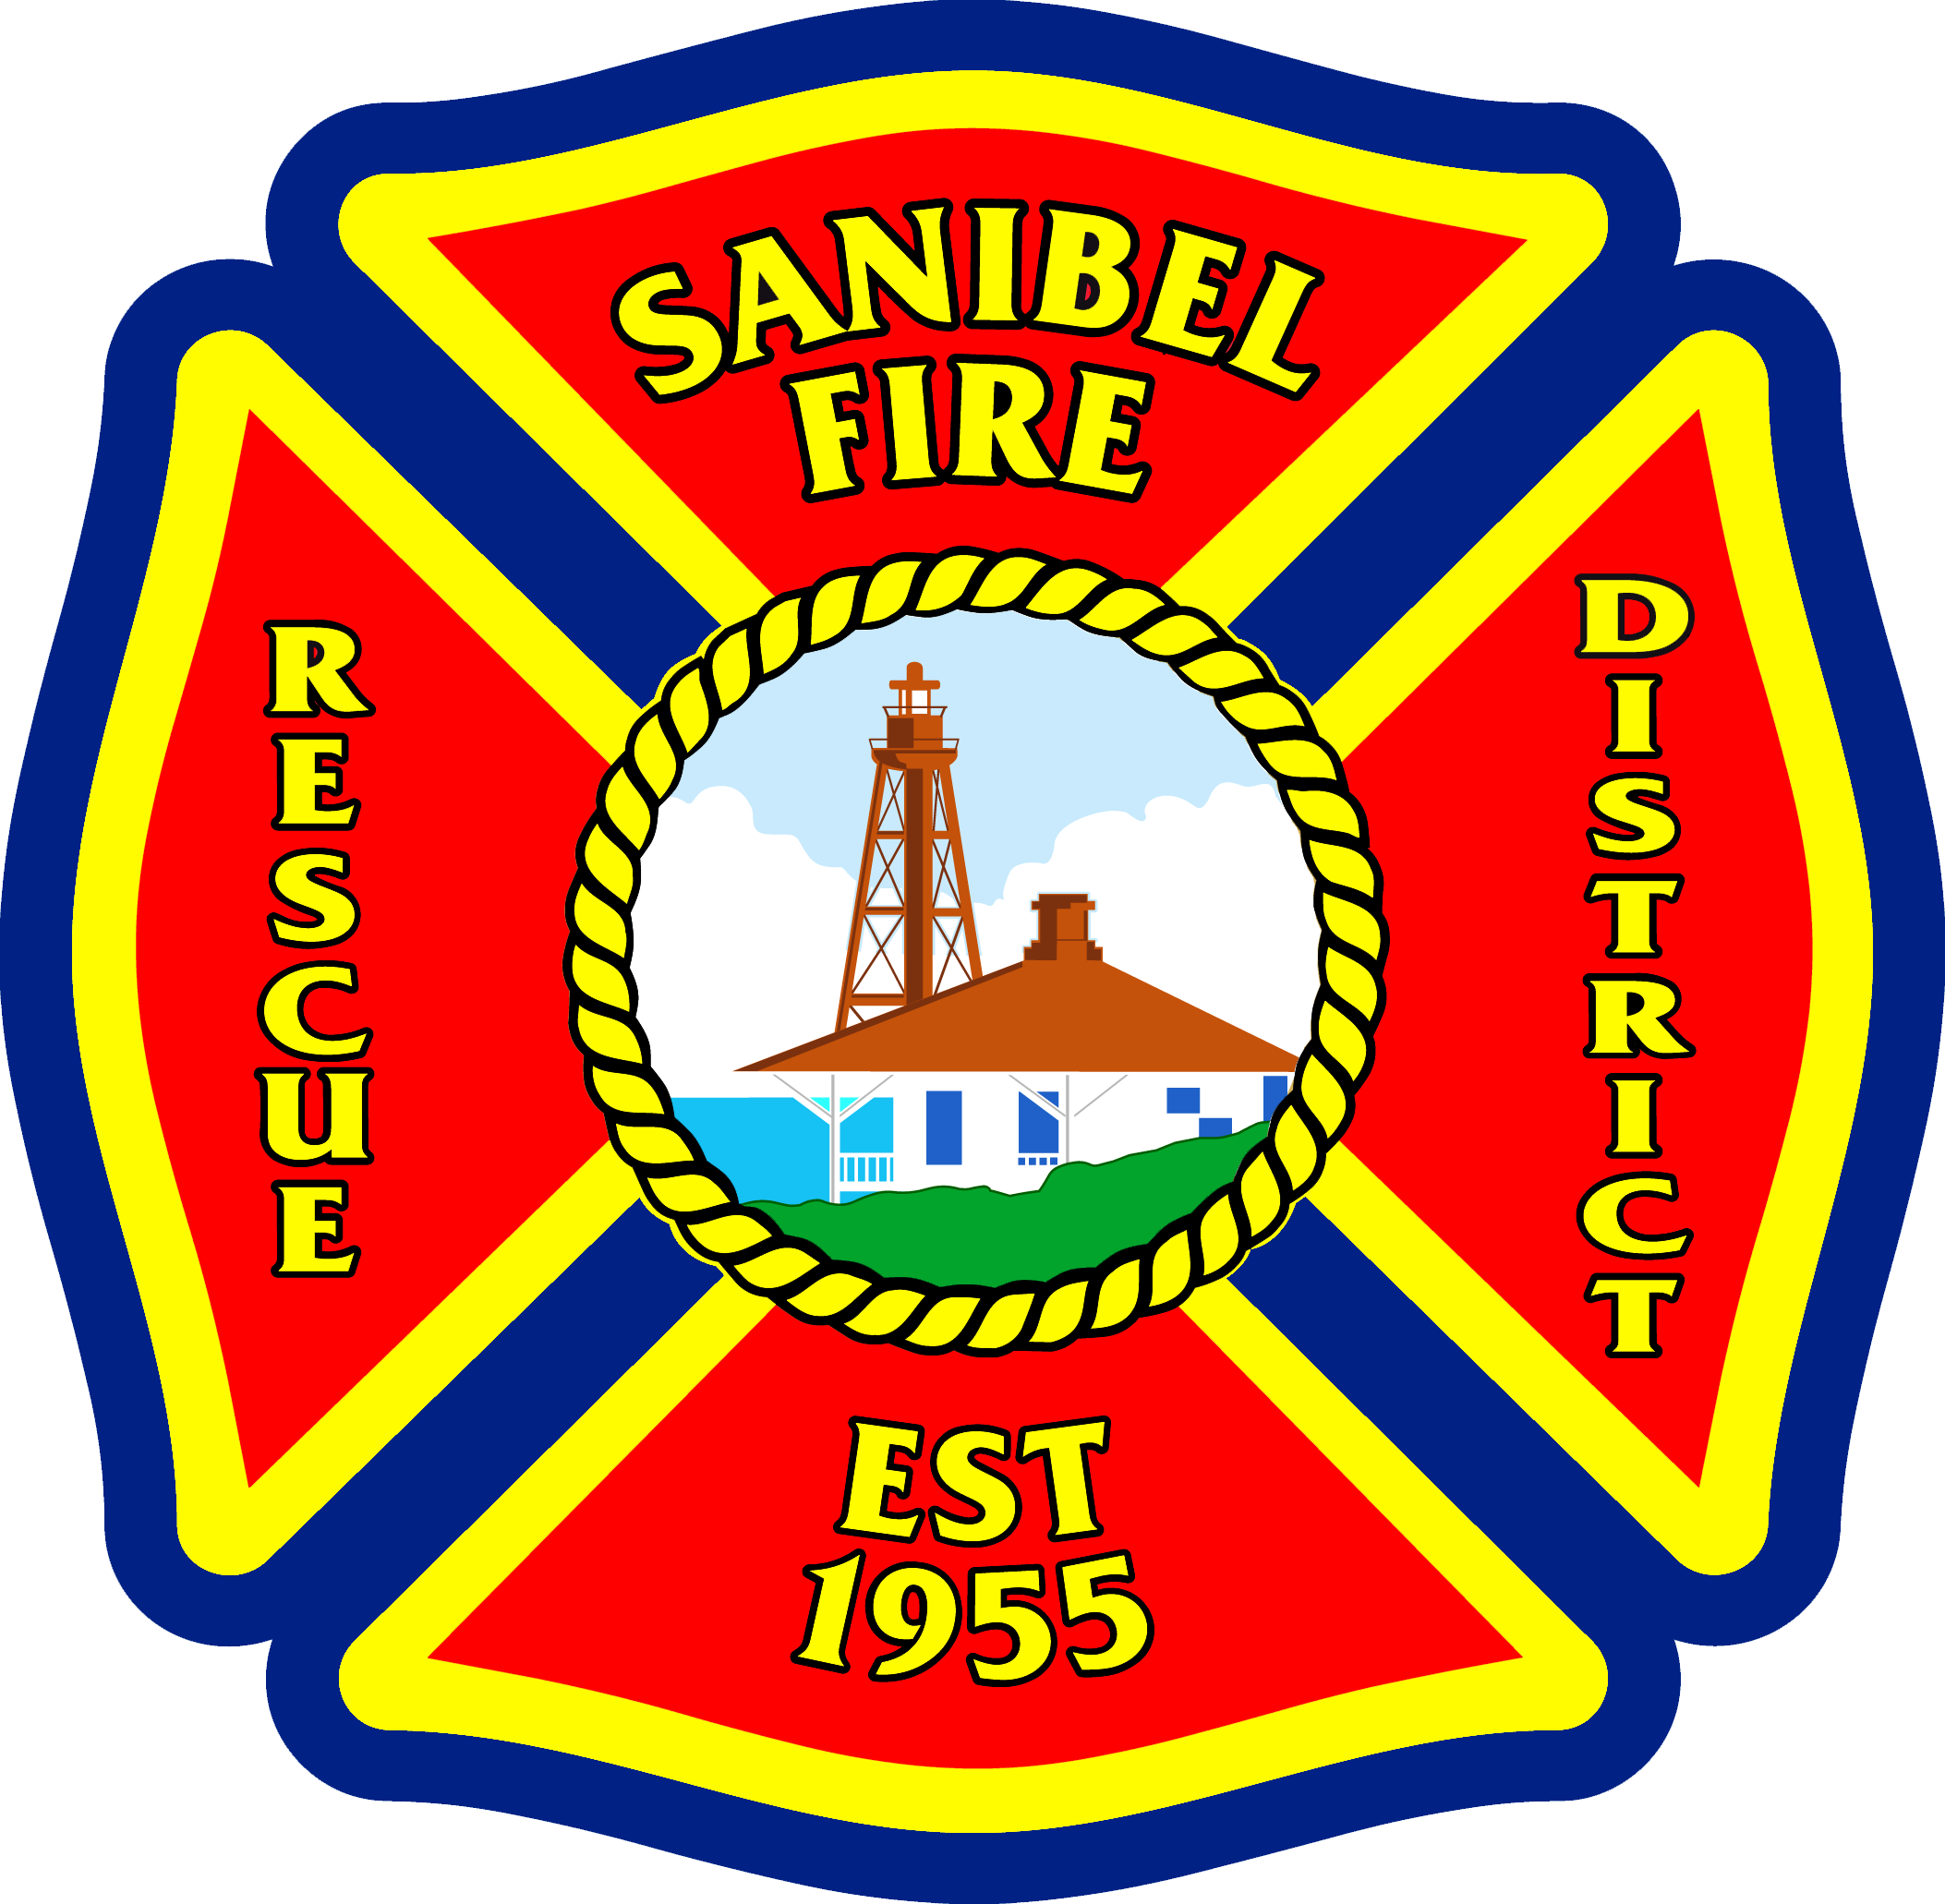 Sanibel fire and district. Firefighter clipart water rescue